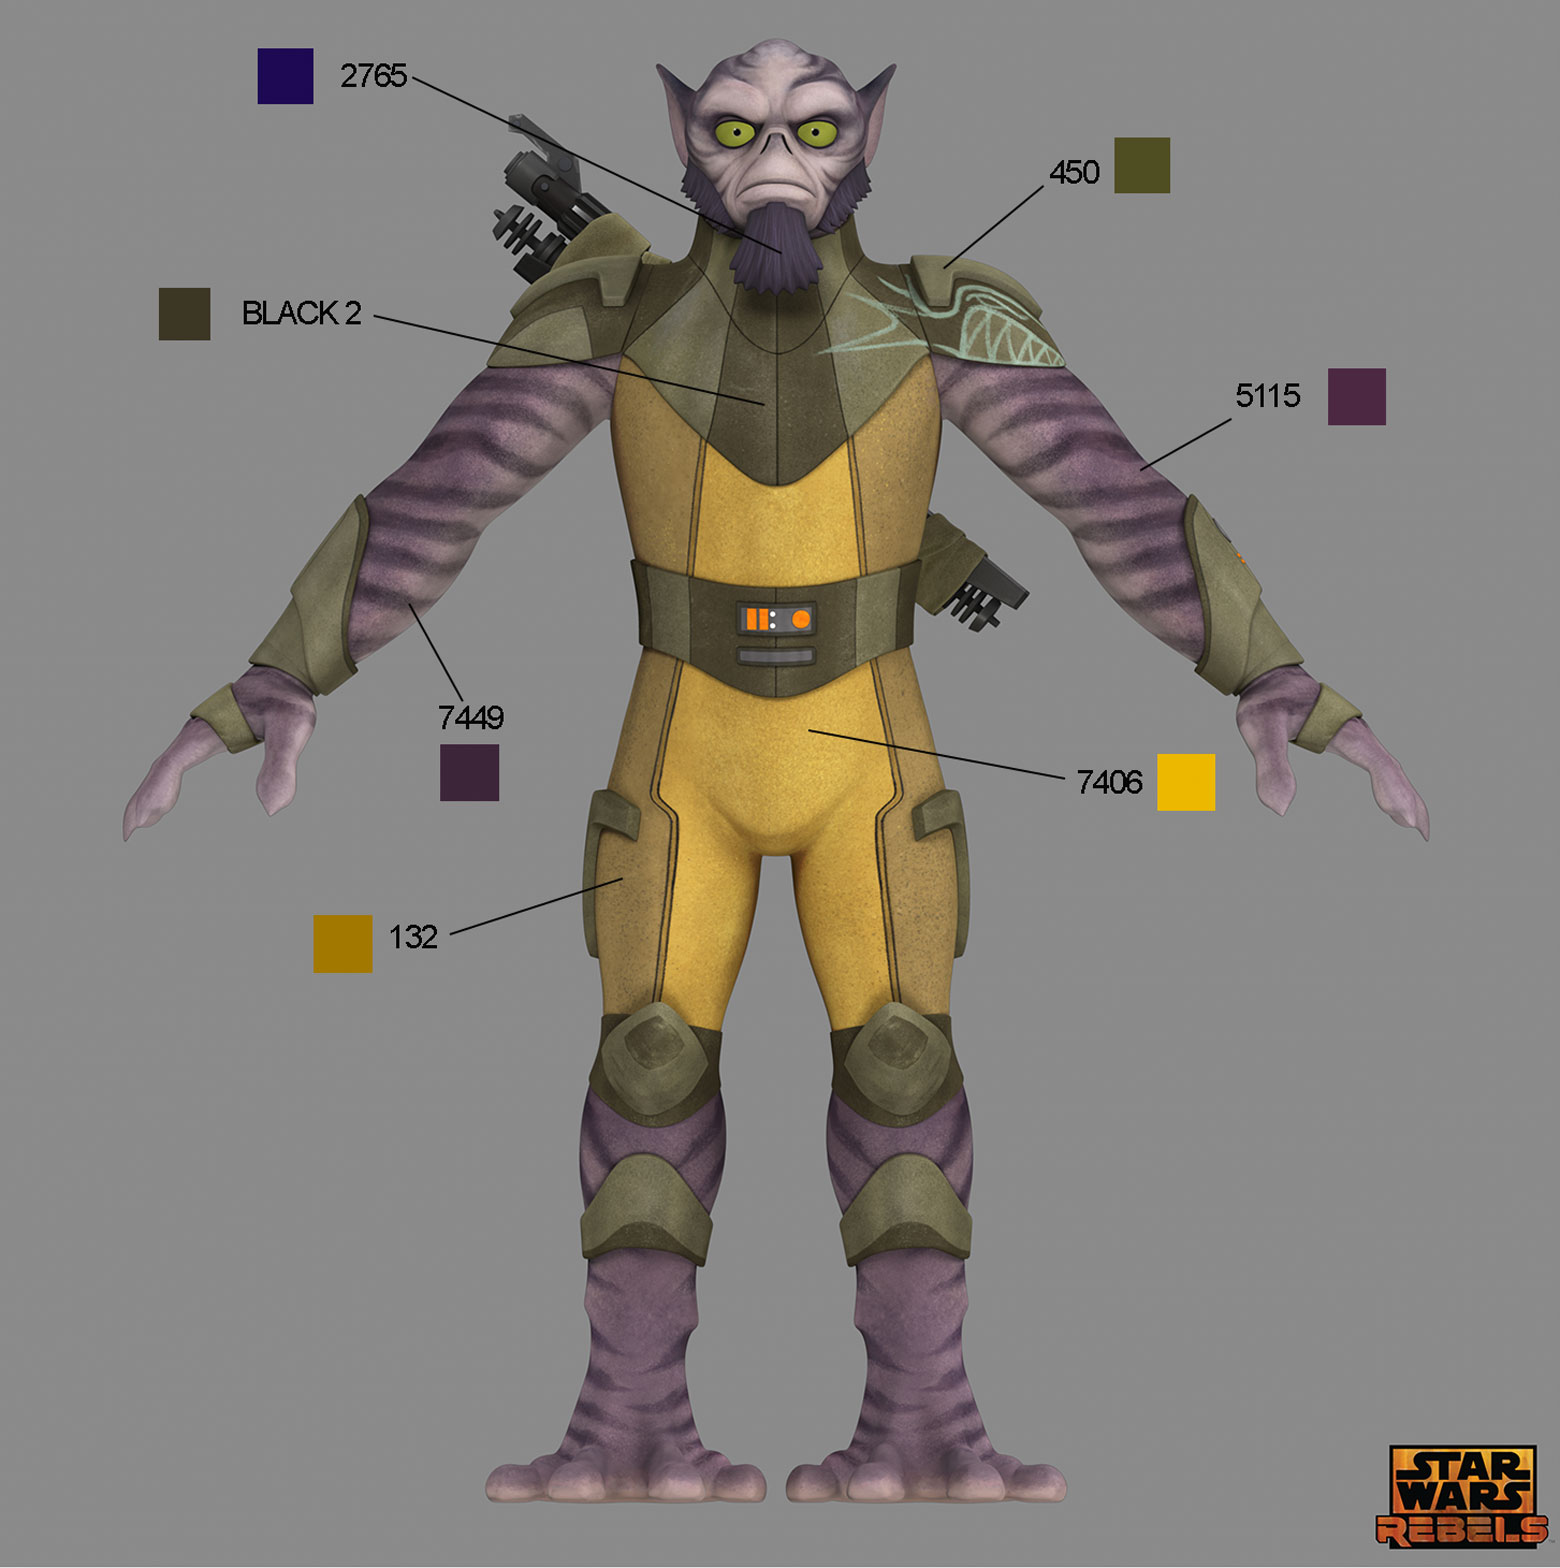 star wars rebels costume color guide for padawans twileks and more